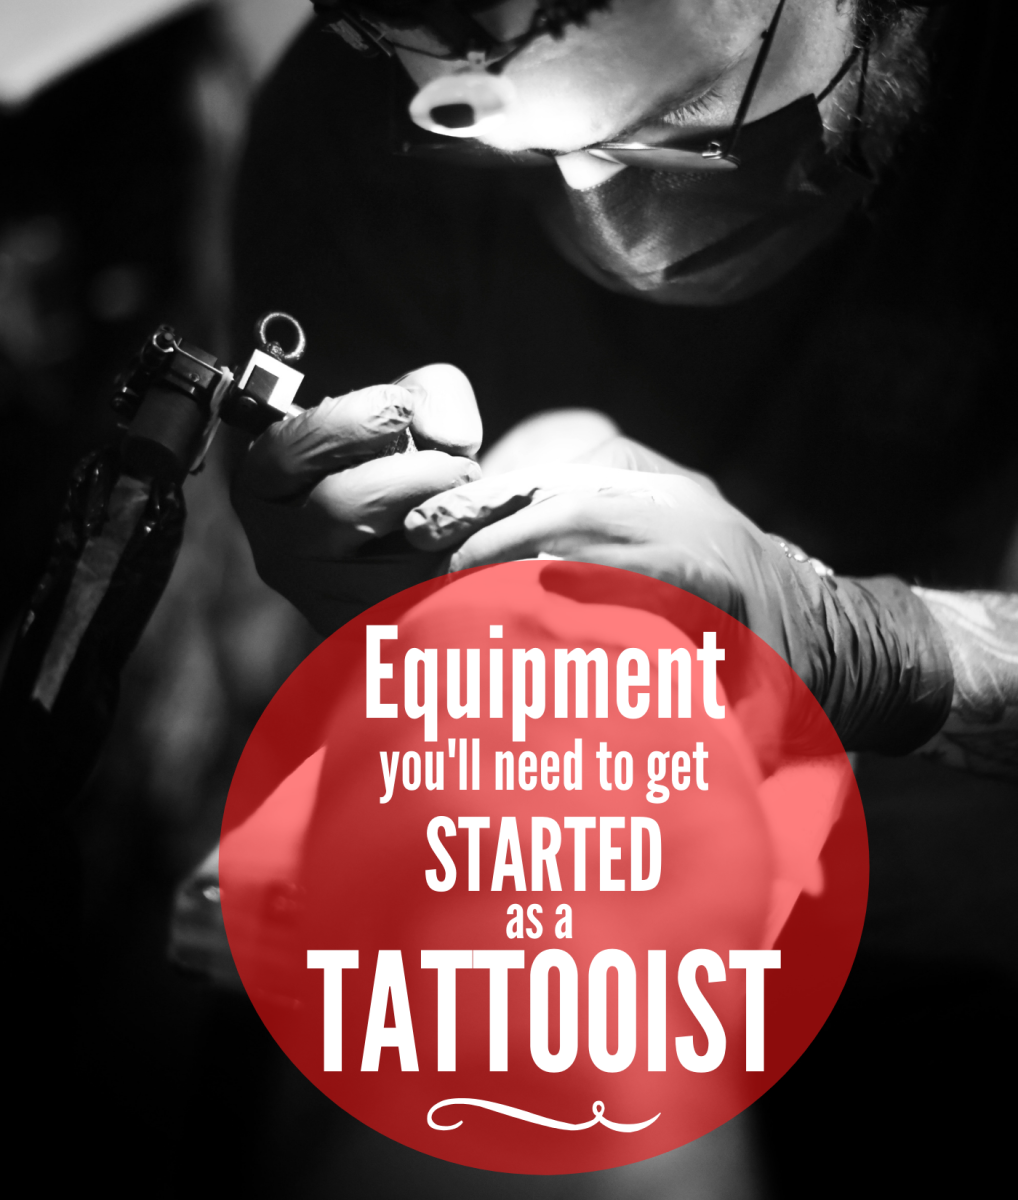 A list of the gear and equipment you will need to get started tattooing.